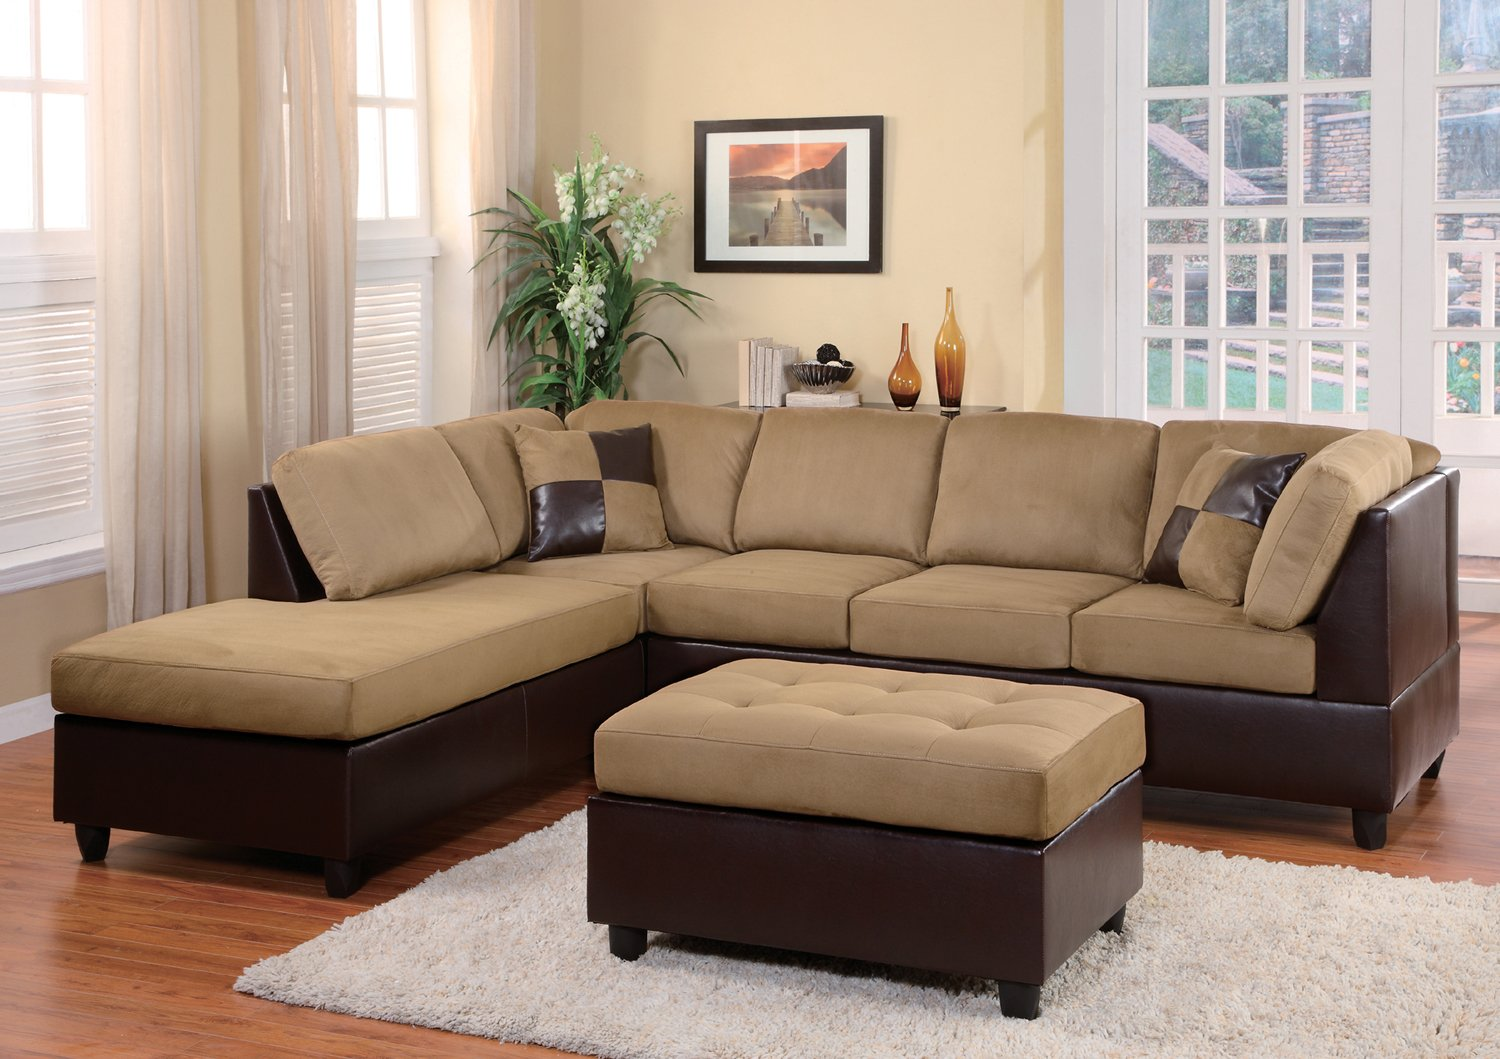 Amazon.com Homelegance 9909BR Comfort Living Sectional Collection with 2 Pillows Brown Rhino Microfiber and Dark Brown Faux Leather Kitchen u0026 Dining : two tone sectional - Sectionals, Sofas & Couches